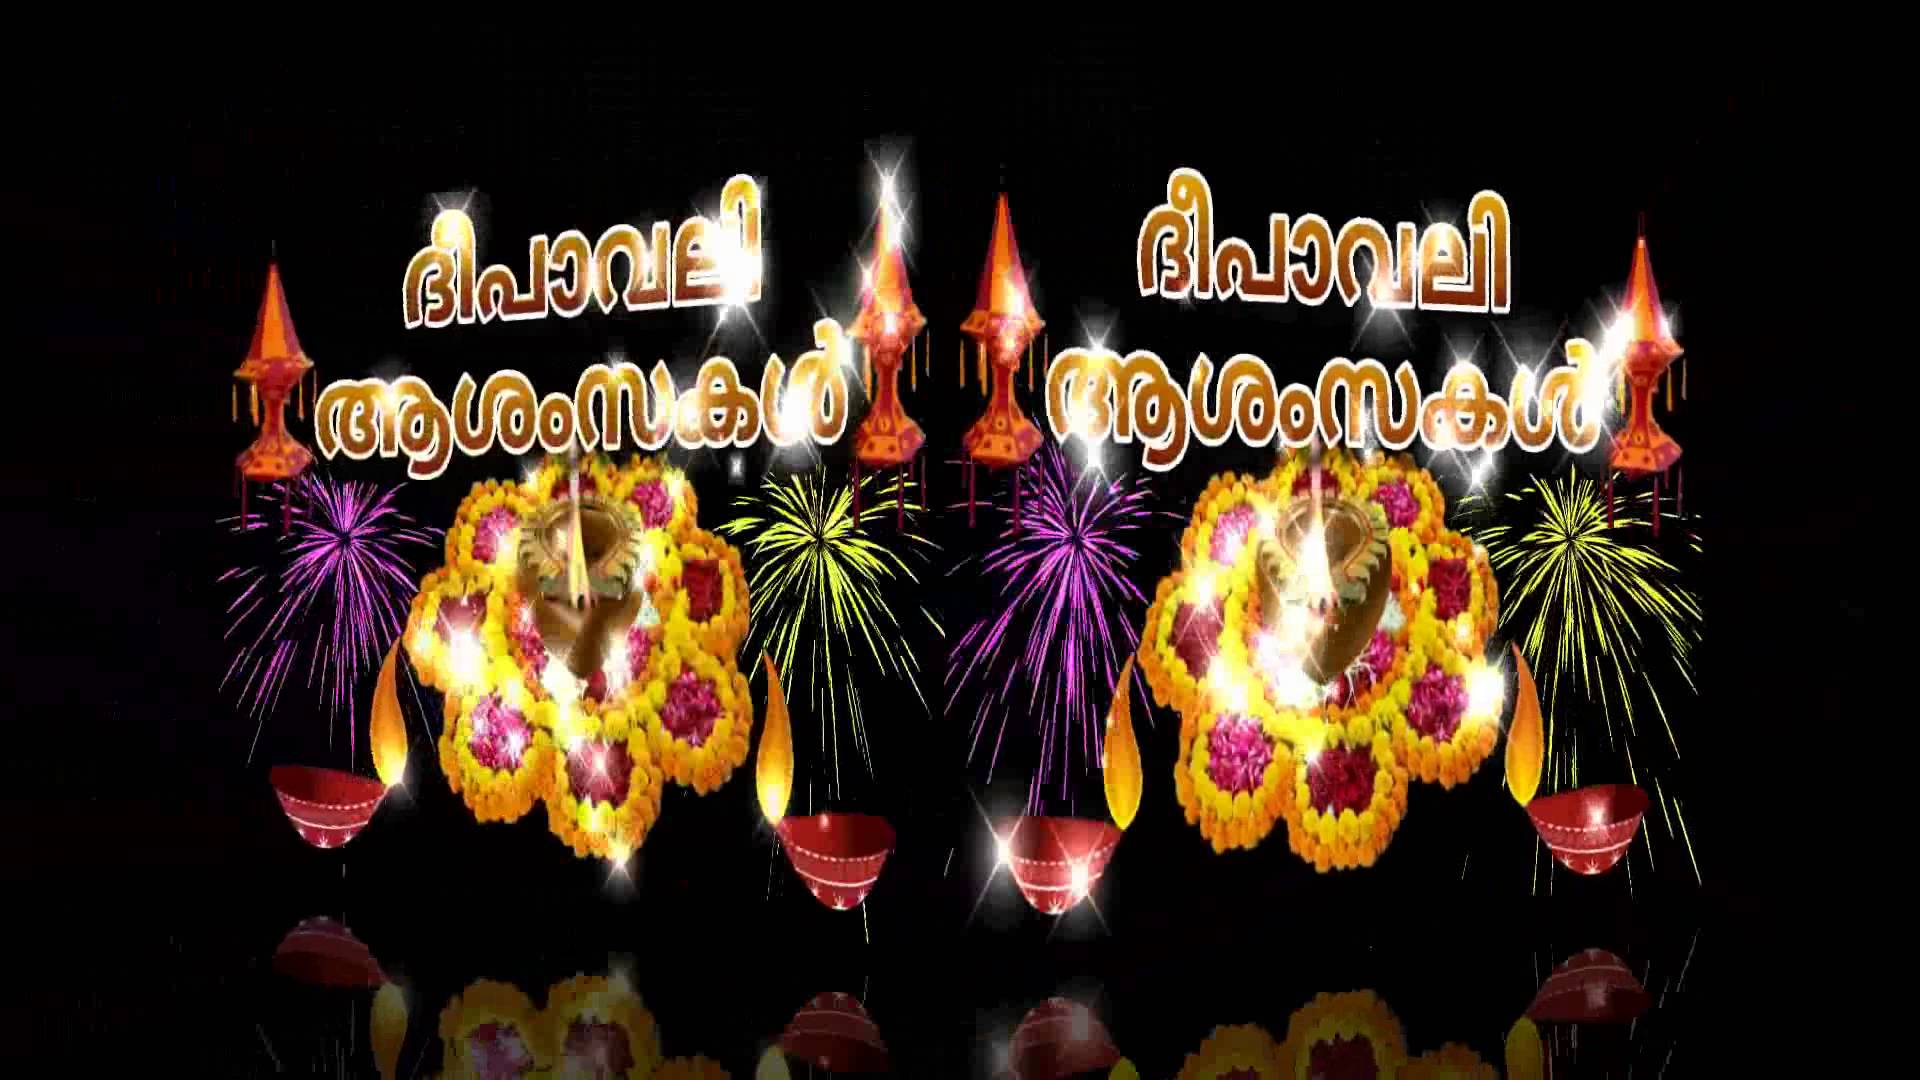 Happy Deepawali Wishes in Marathi